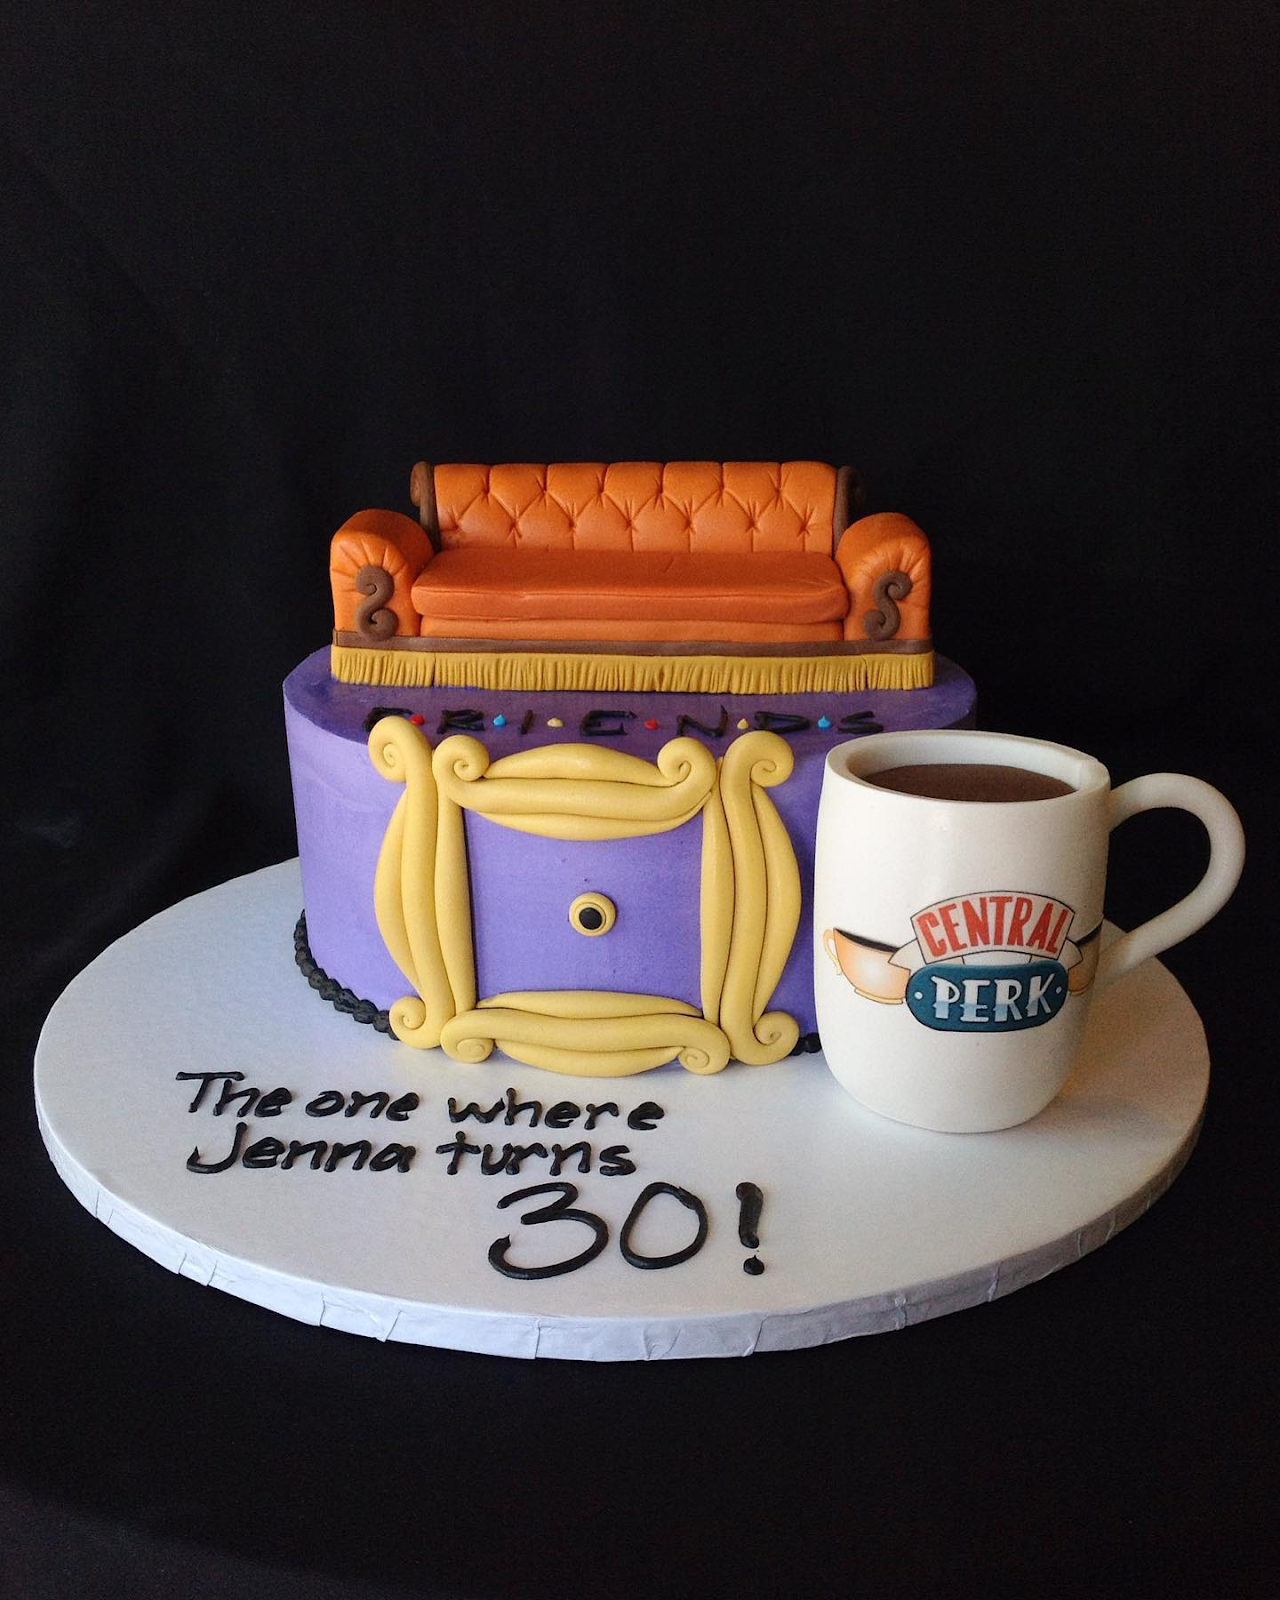 TV show Friends birthday cake with a cup of central perk coffee